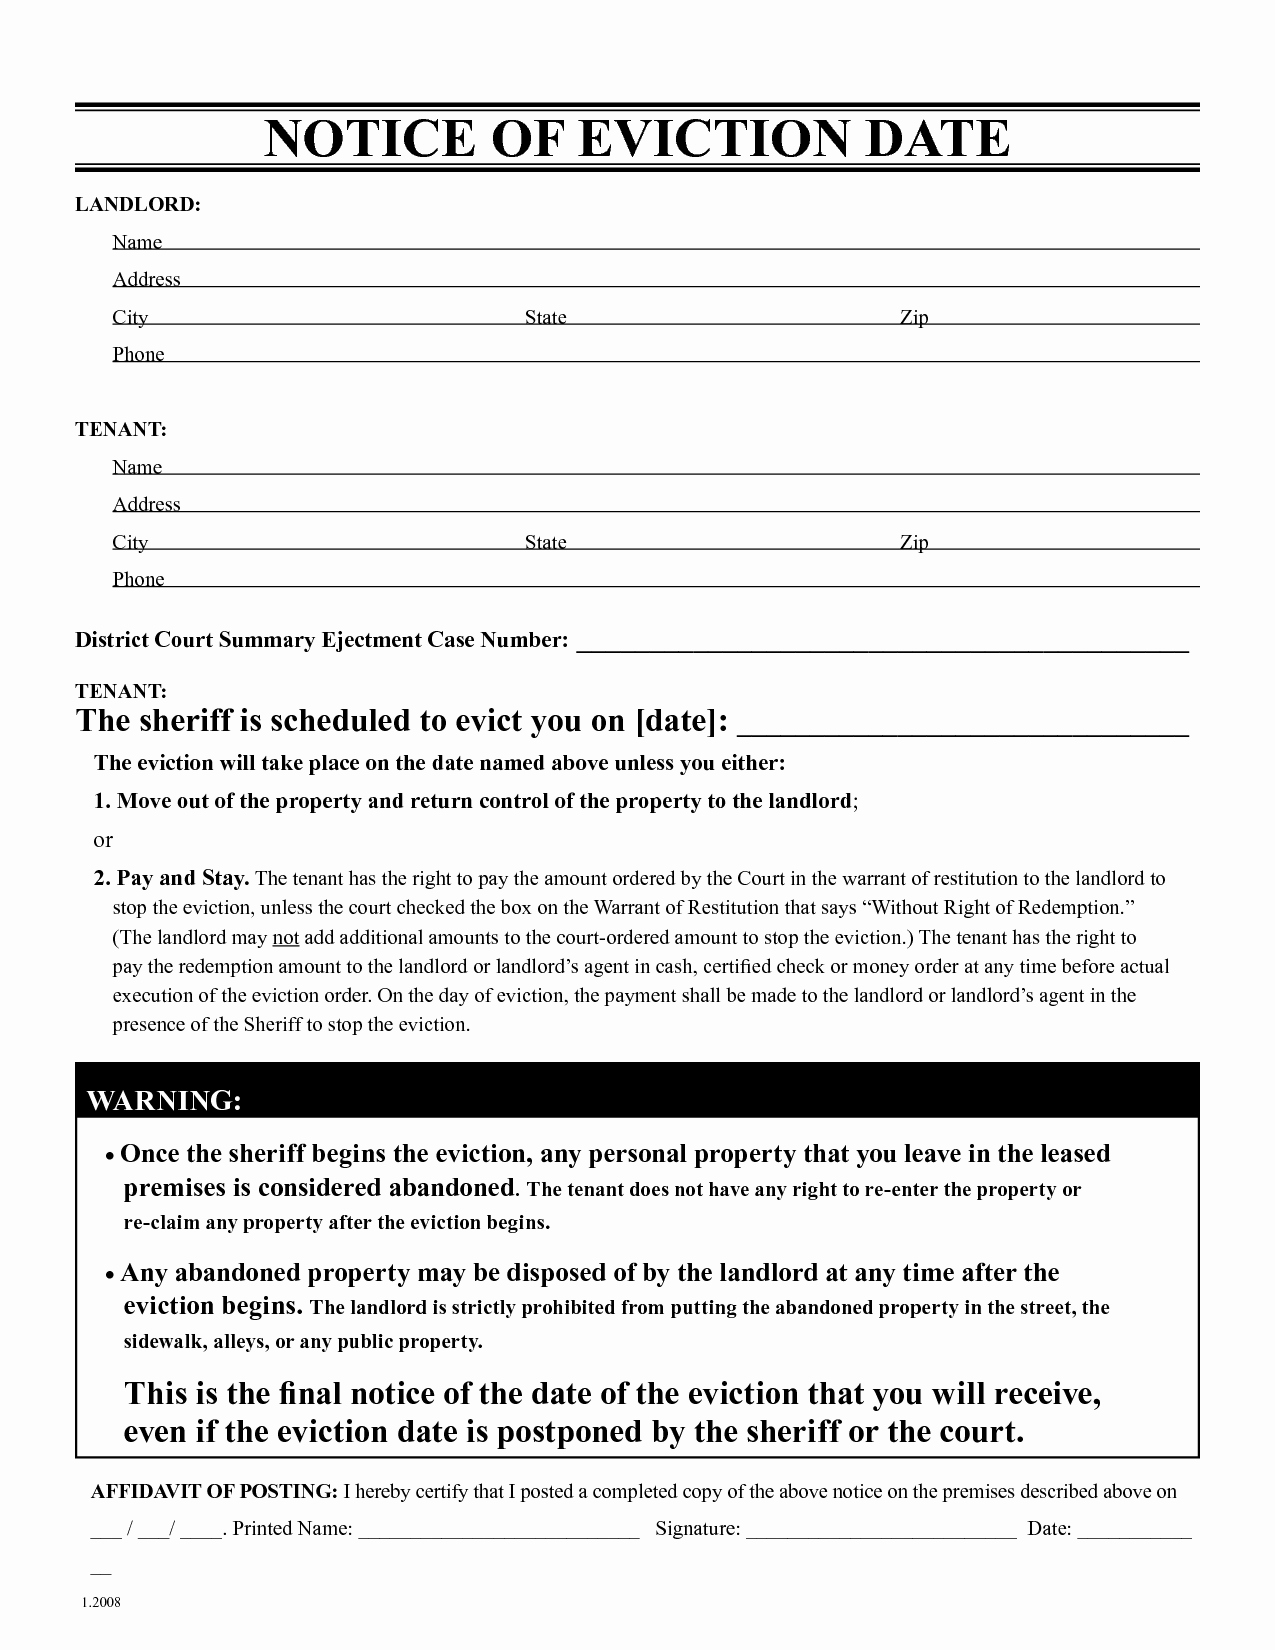 Free Eviction Notice Template New Free Eviction Notice Template